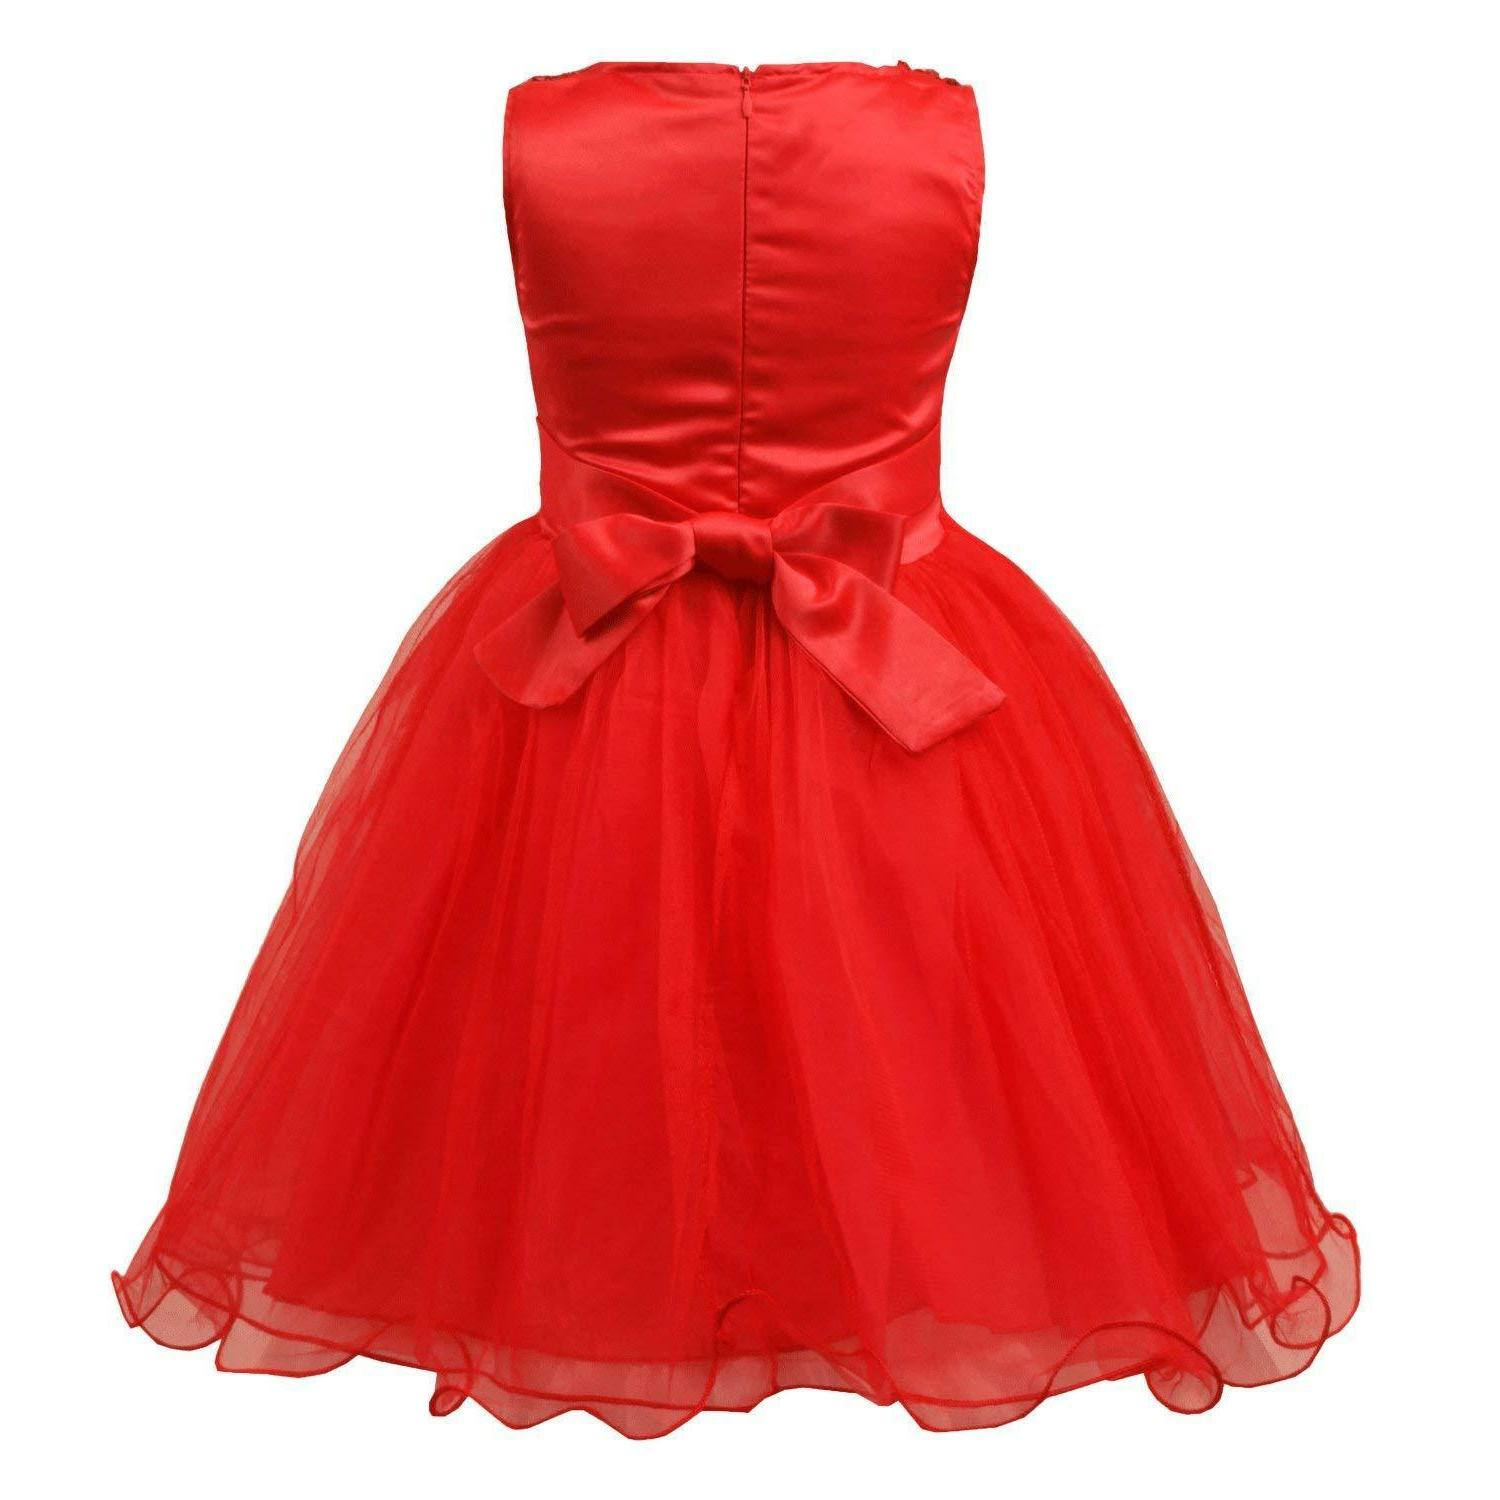 JerrisApparel Girls' Mesh Ball Gown Party Dress Tulle